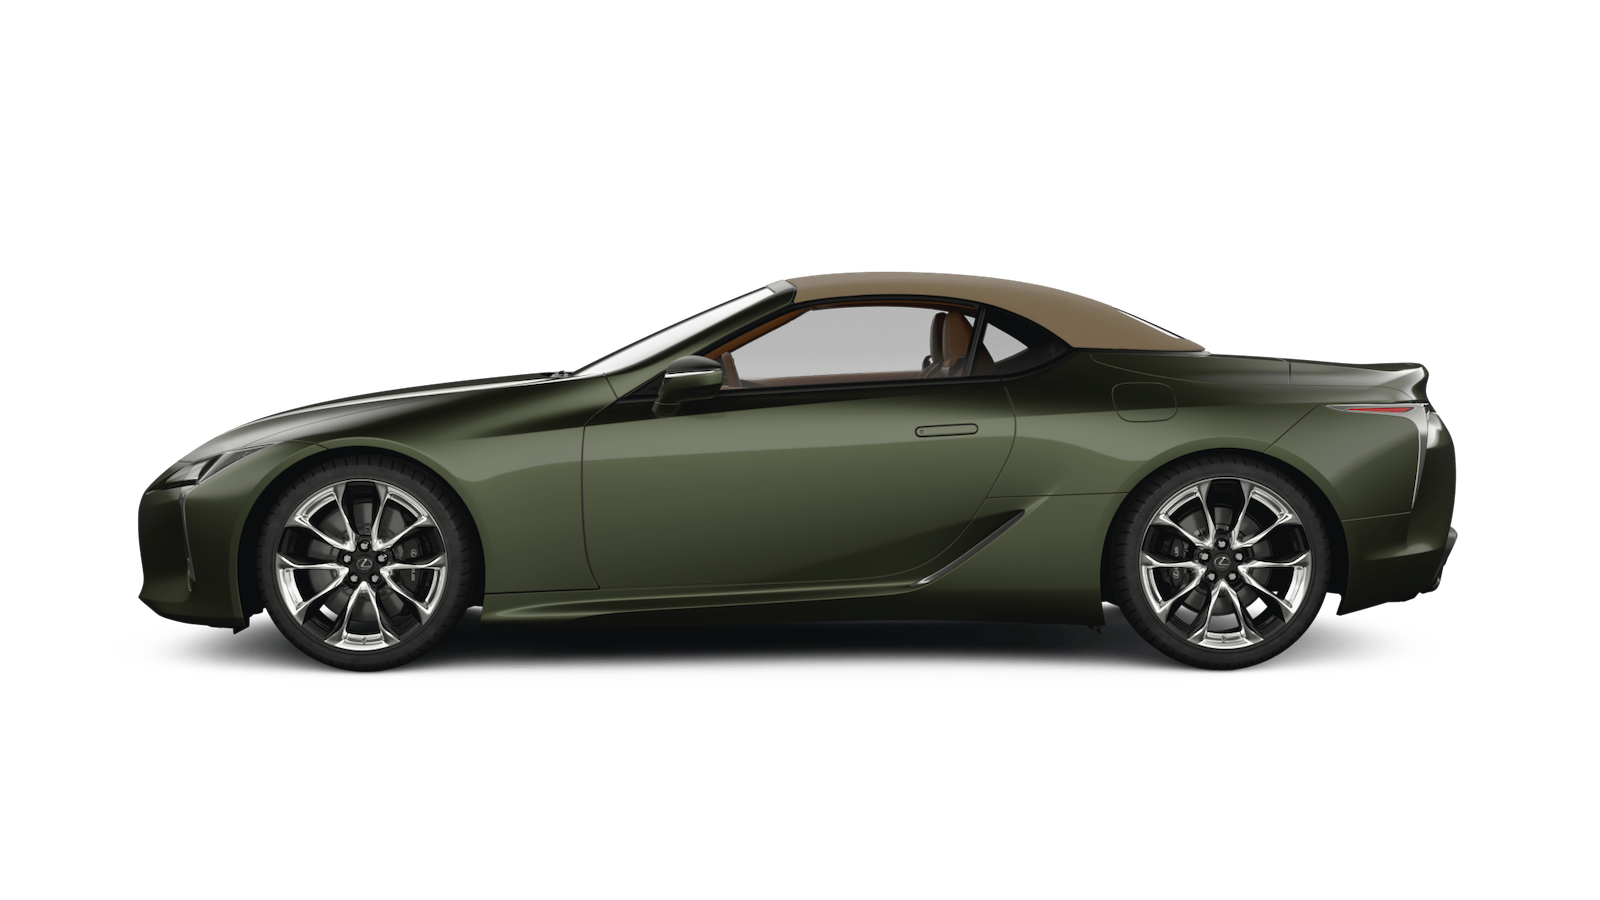 LC Convertible in Khaki Metal